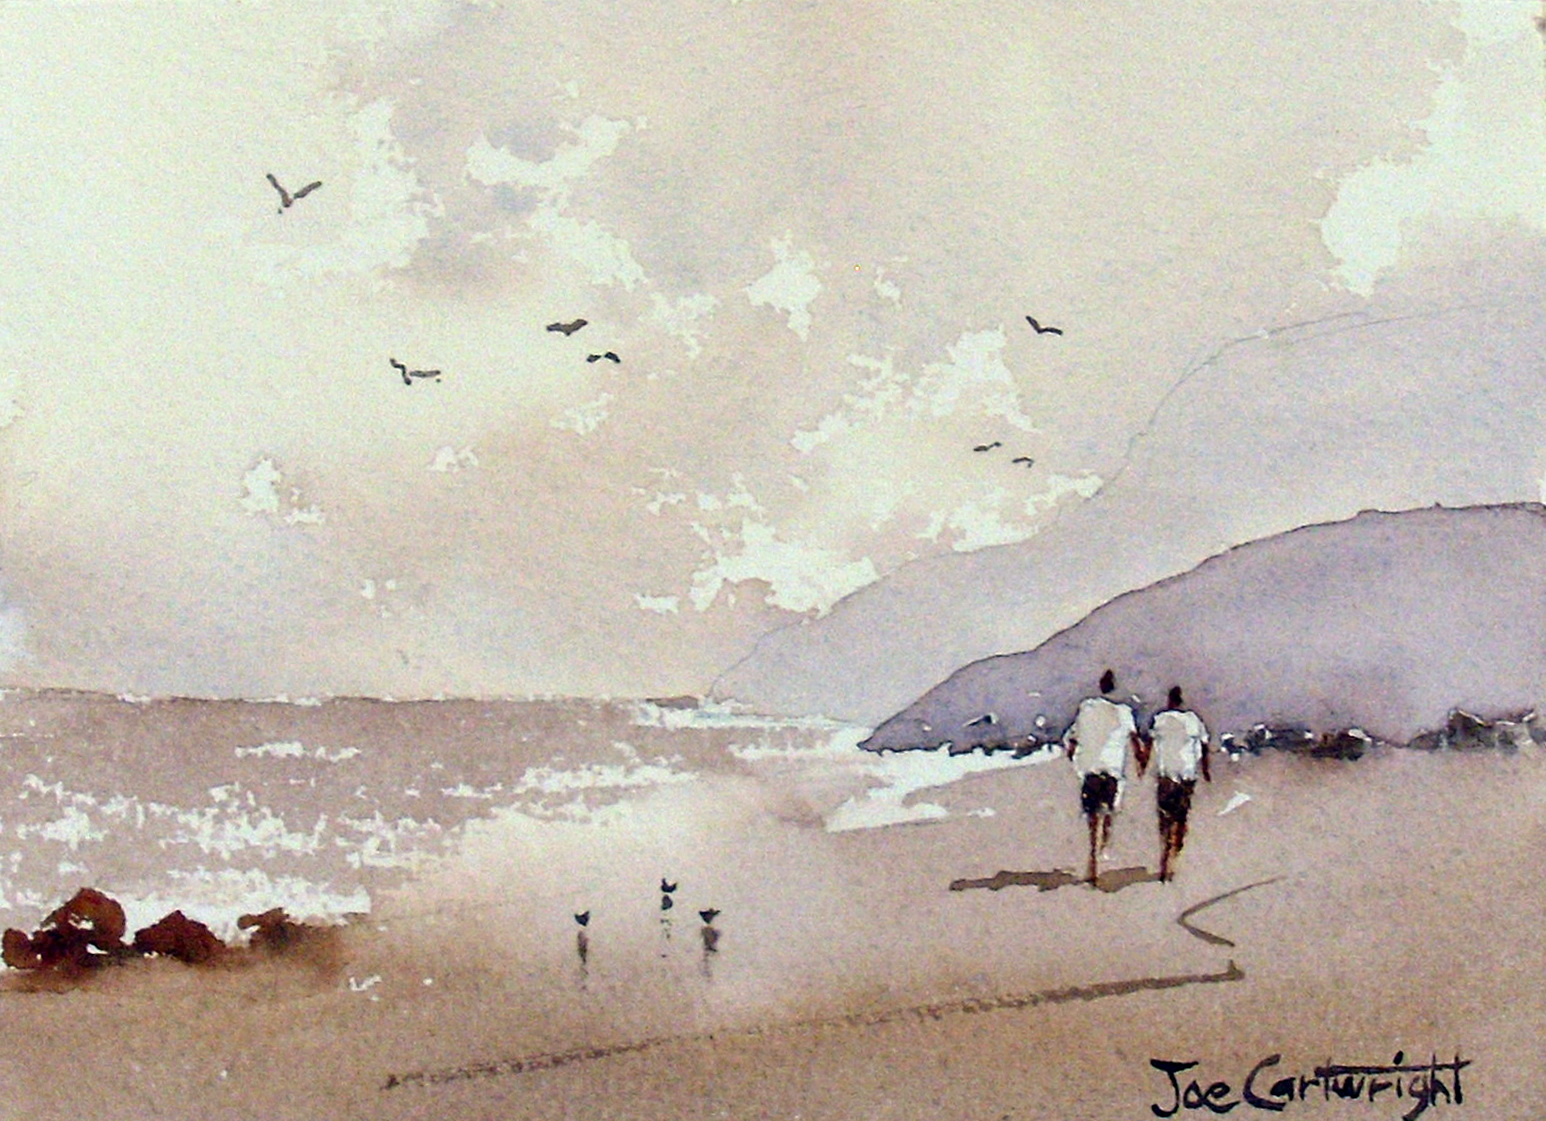 Joe cartwright 39 s watercolor blog august 2011 for Watercolor painting step by step